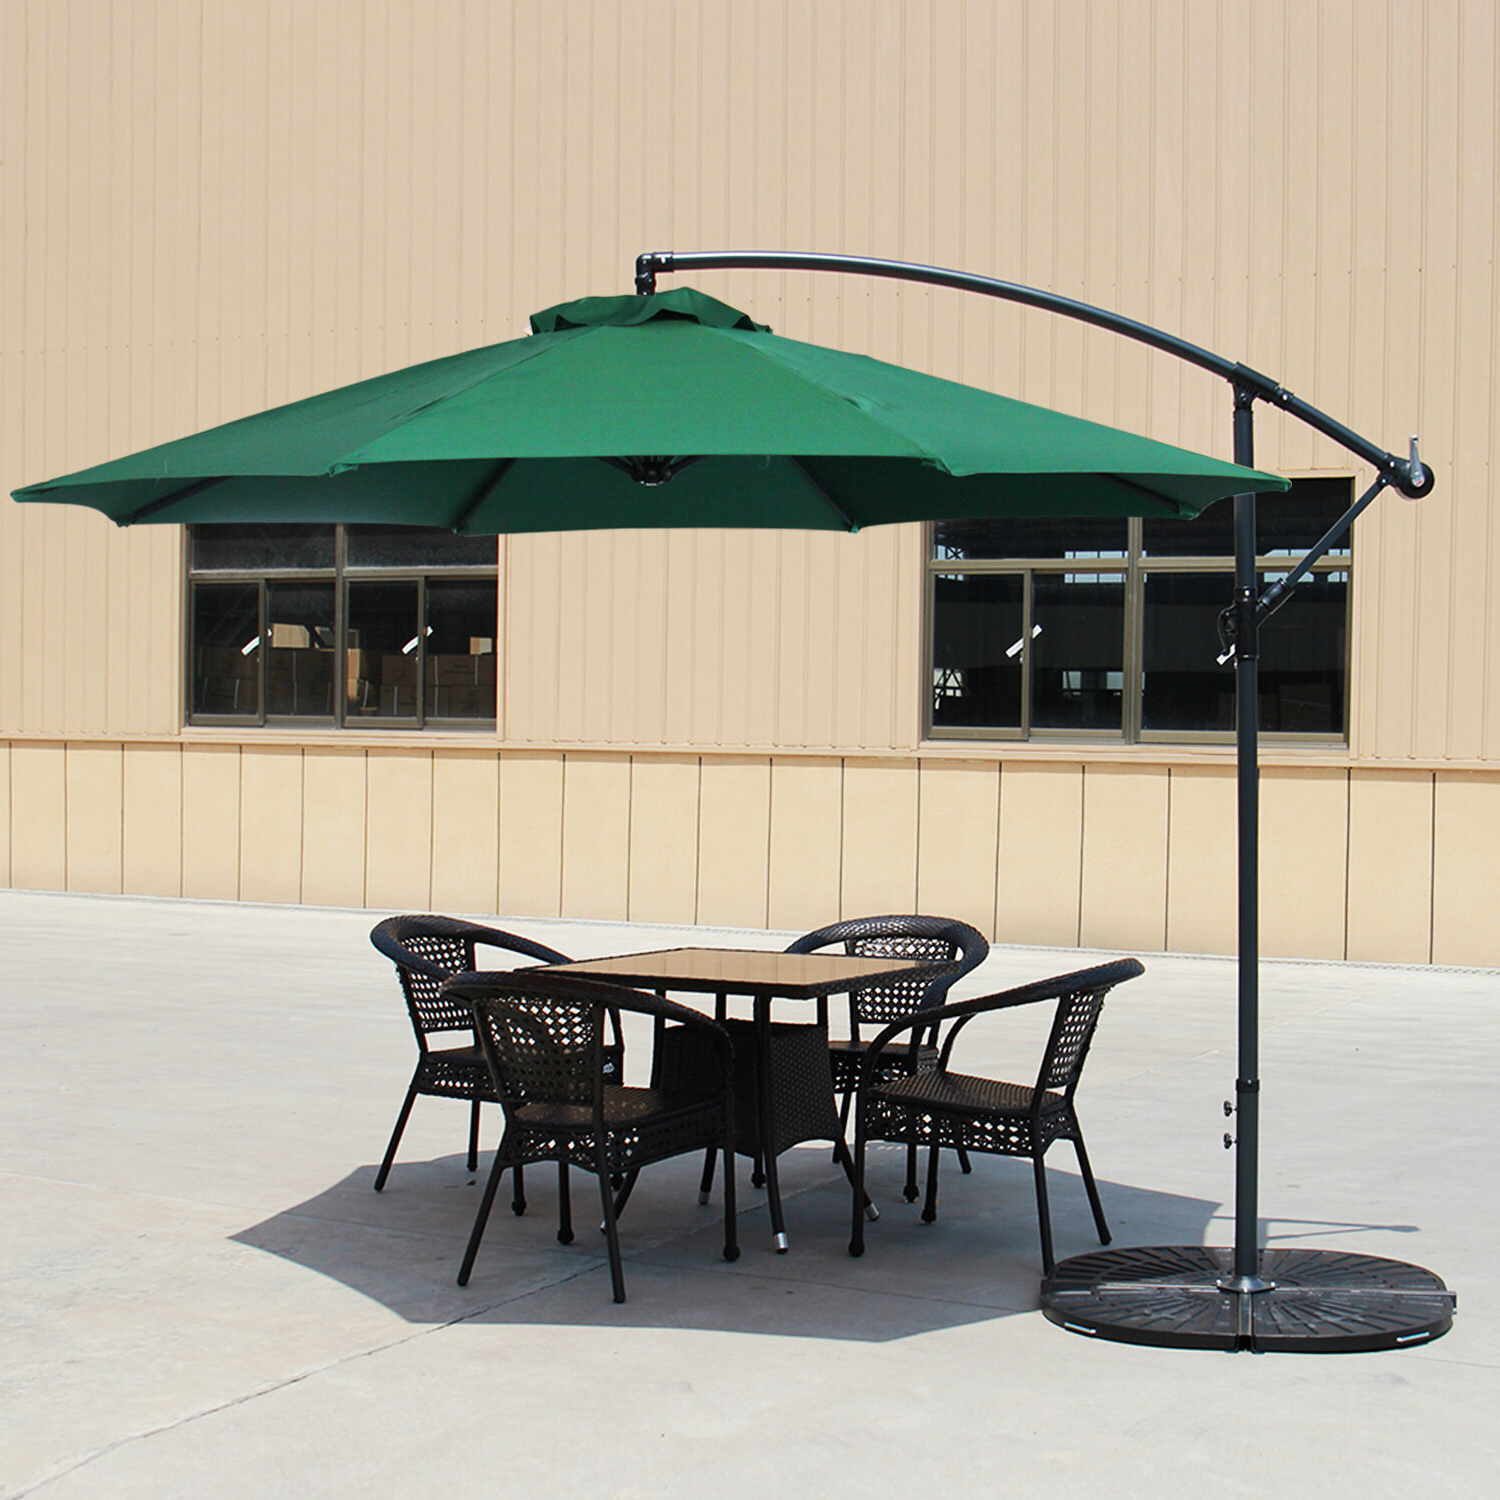 Scott 10' Cantilever Umbrella Intended For Best And Newest Imogen Hanging Offset Cantilever Umbrellas (View 6 of 20)